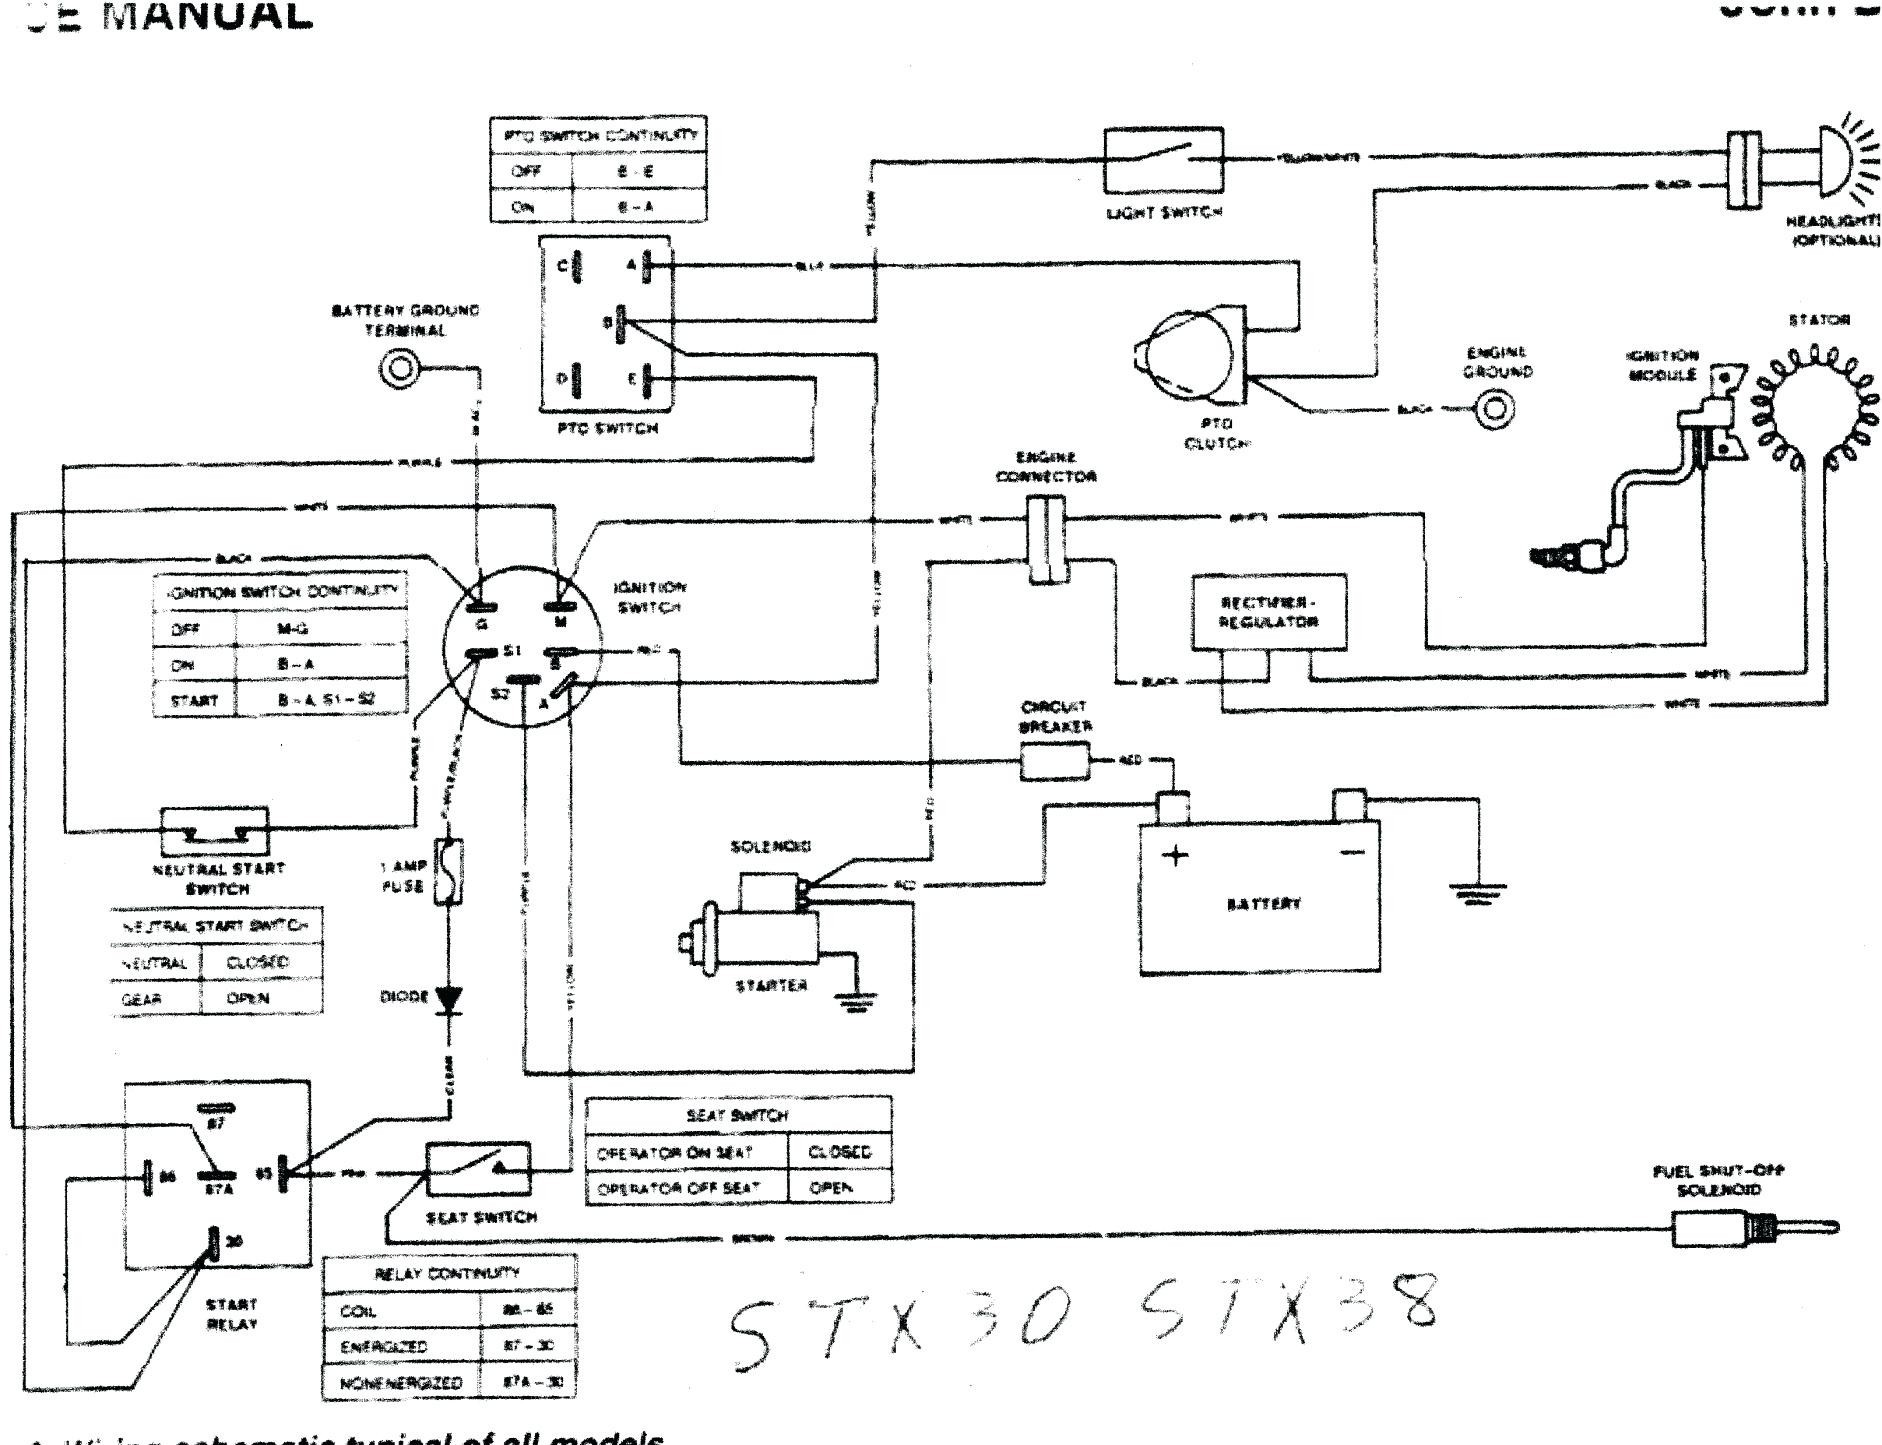 [DIAGRAM_34OR]  🏆 [DIAGRAM in Pictures Database] John Deere 4440 Wiring Diagram Free  Picture Just Download or Read Free Picture - DIAGRAM-LEG-MUSCLES.ONYXUM.COM | John Deere 4440 Wiring Diagram |  | Complete Diagram Picture Database - Onyxum.com